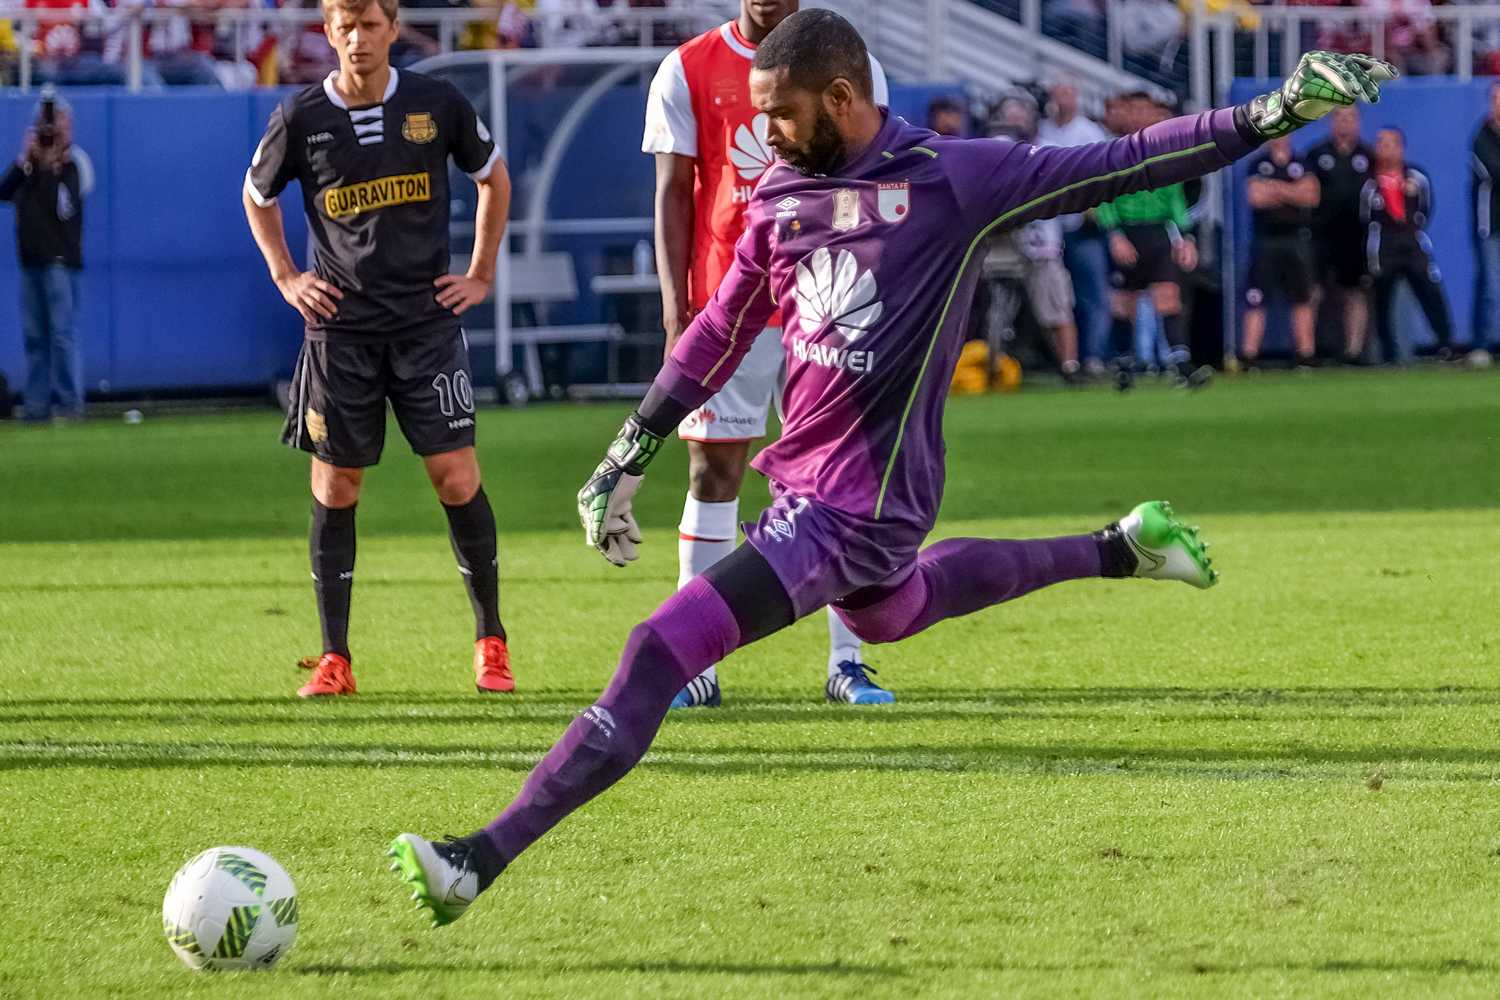 Independiente Santa Fe goalkeeper Robinson Zapata takes a penalty kick attempt in the fourth minute f his team's game against the Fort Lauderdale Strikers.  Zapata would score the attempt and put his team up 1-0Mohammed F. Emran | Staff Photographer